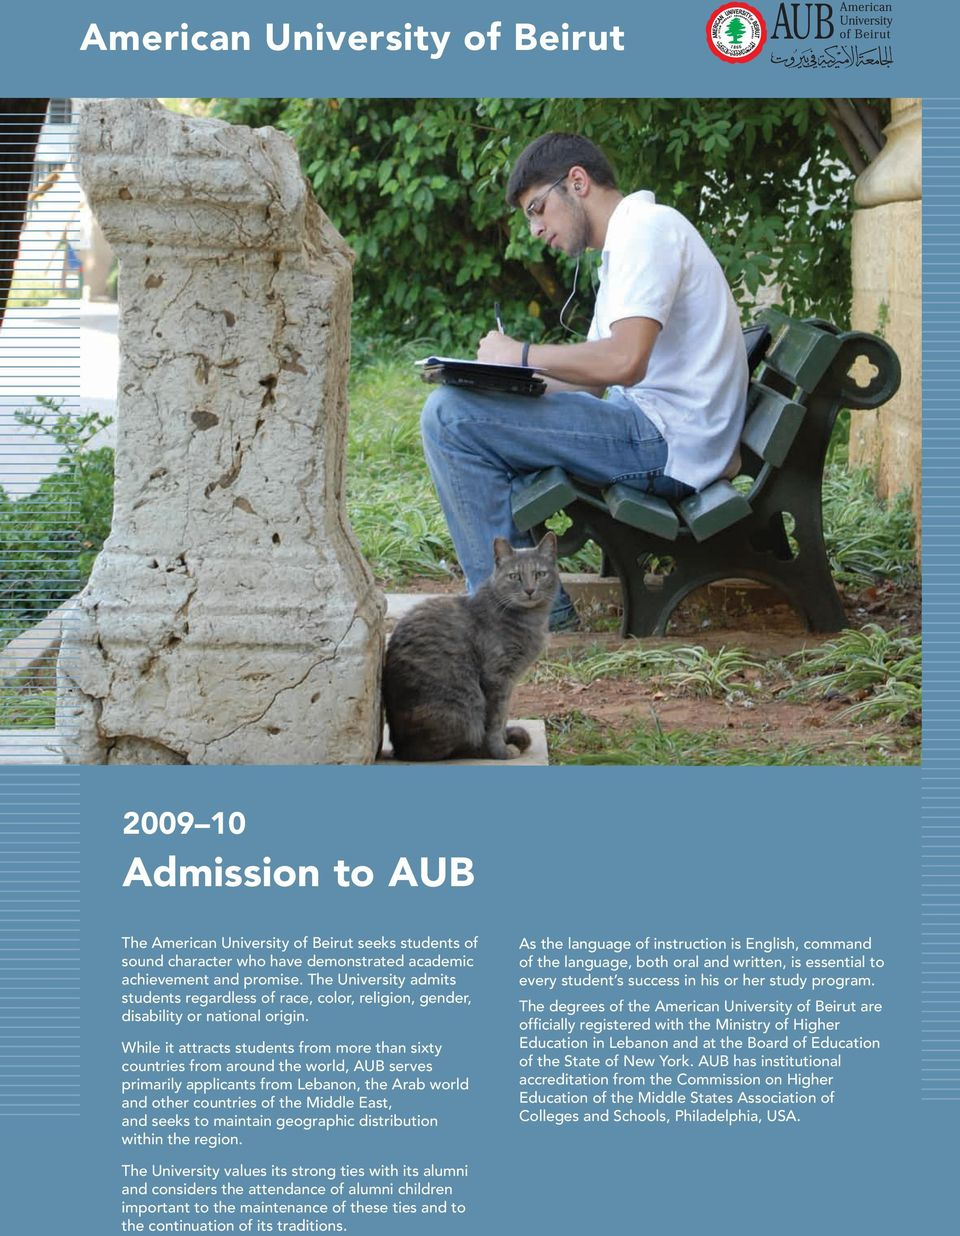 While it attracts students from more than sixty countries from around the world, AUB serves primarily applicants from Lebanon, the Arab world and other countries of the Middle East, and seeks to